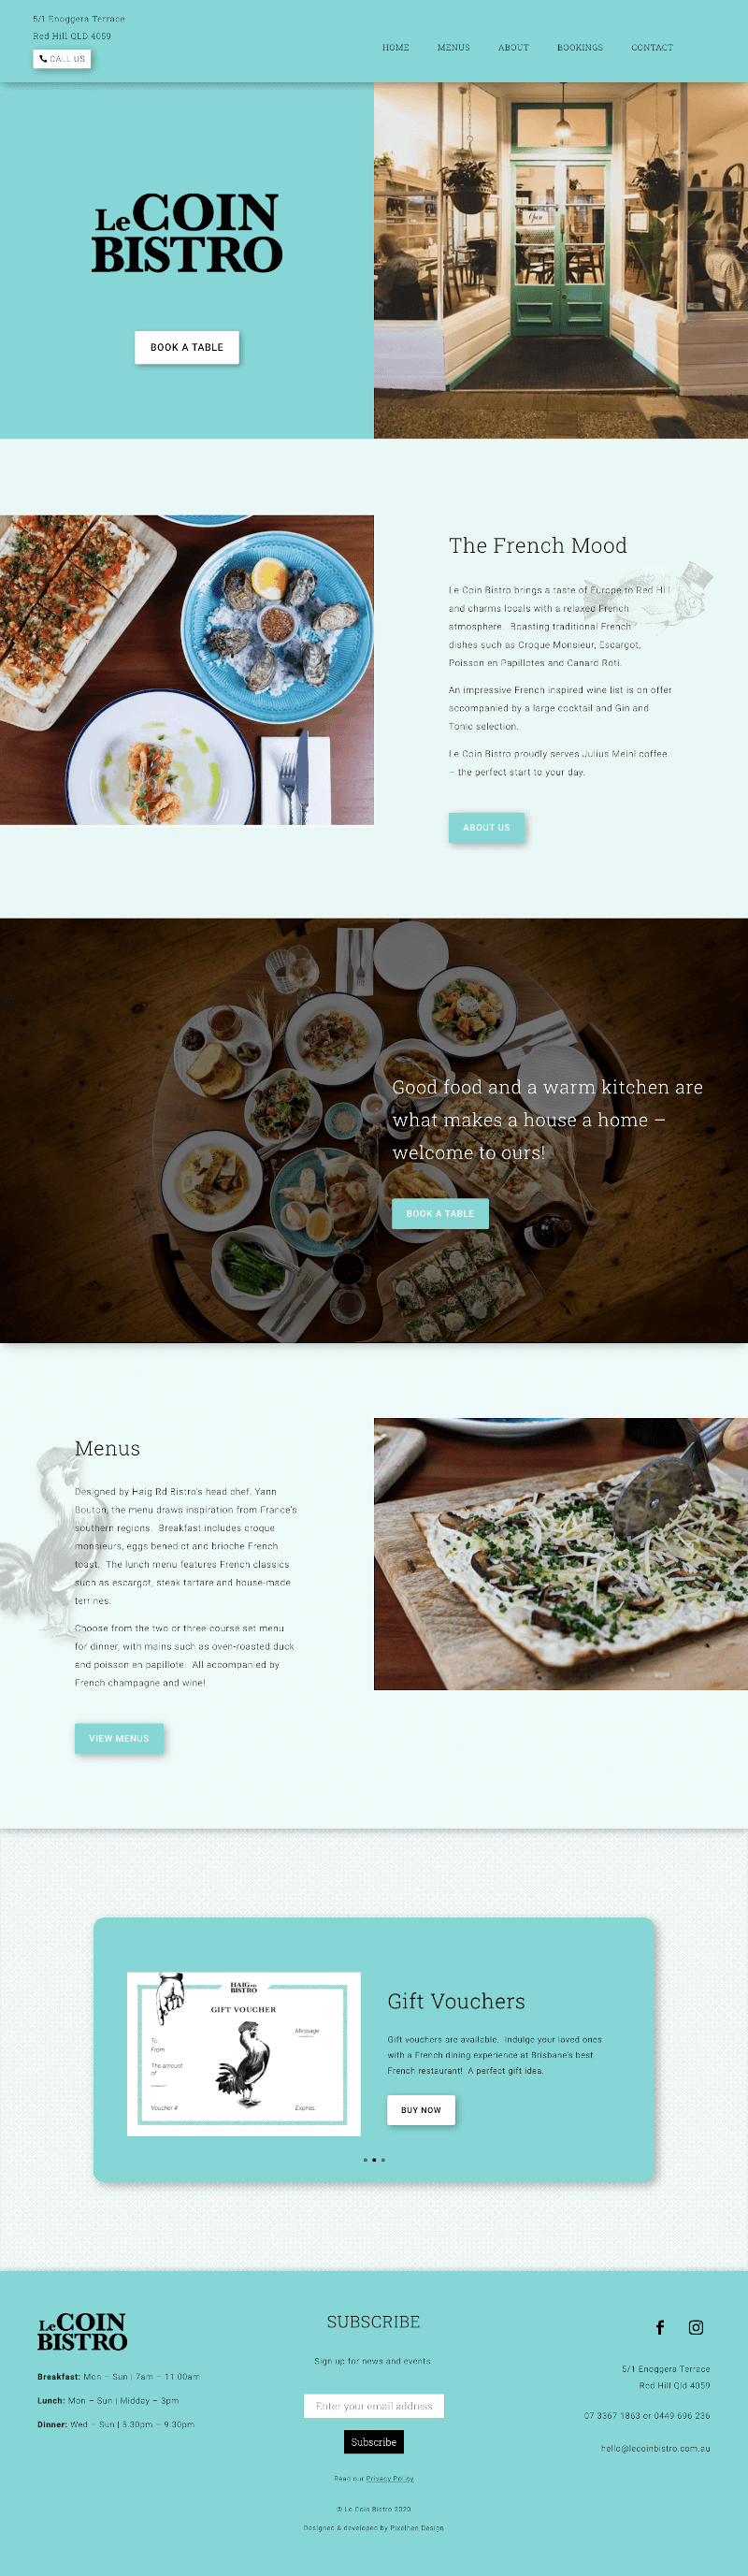 Full screen display of Le Coin Bistro site build by Pixelhen Design